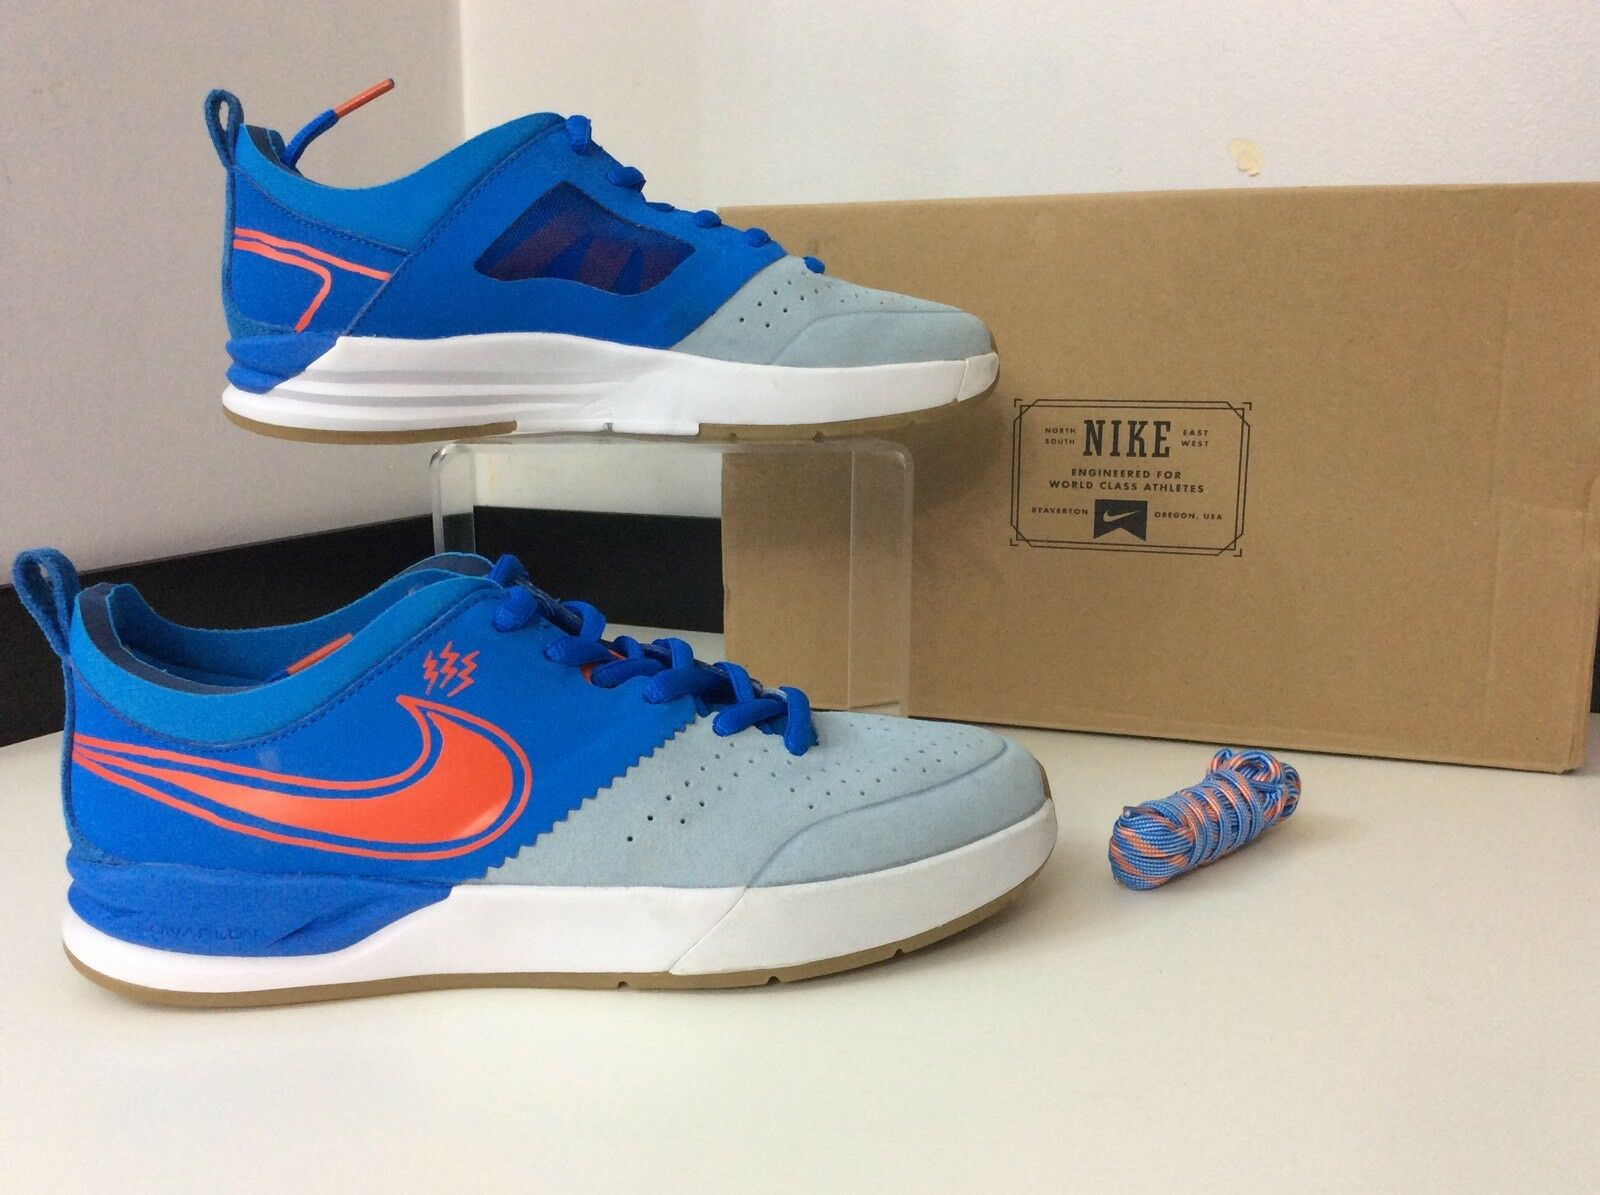 Great discount NIke Project Ba Premium Skate Board Trainers, Sneakers, Eu38.5 Worn Once